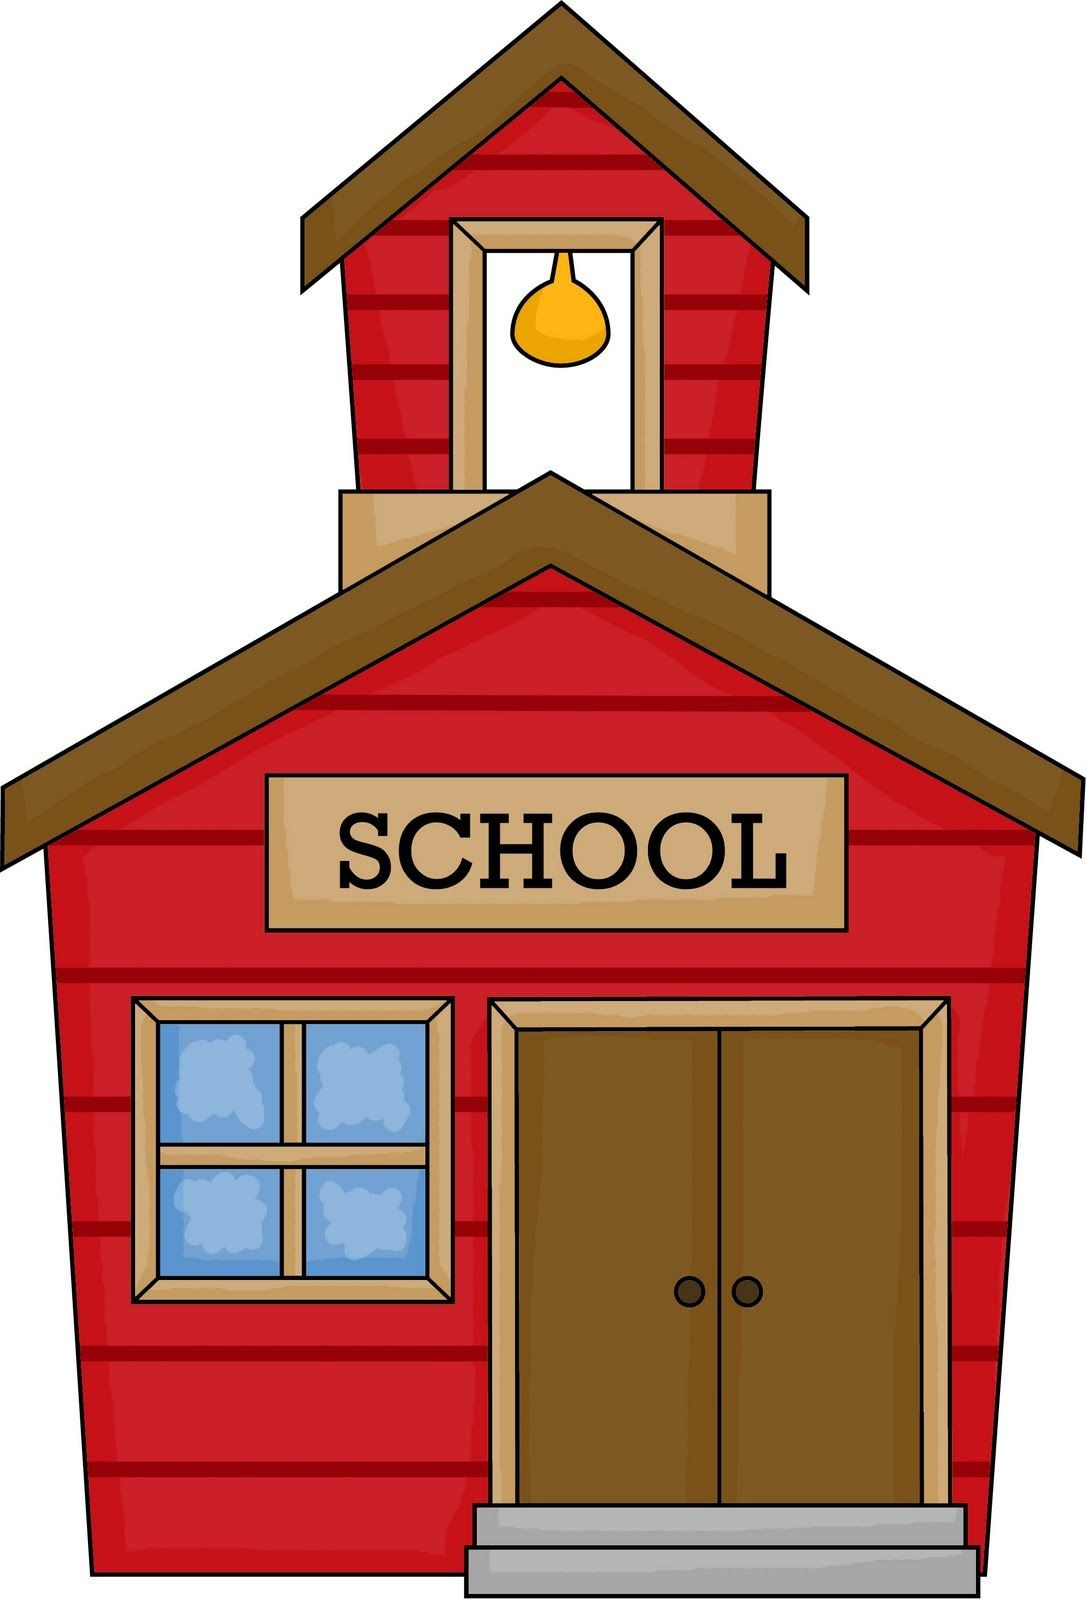 Free animated back to school clipart 1 » Clipart Portal.